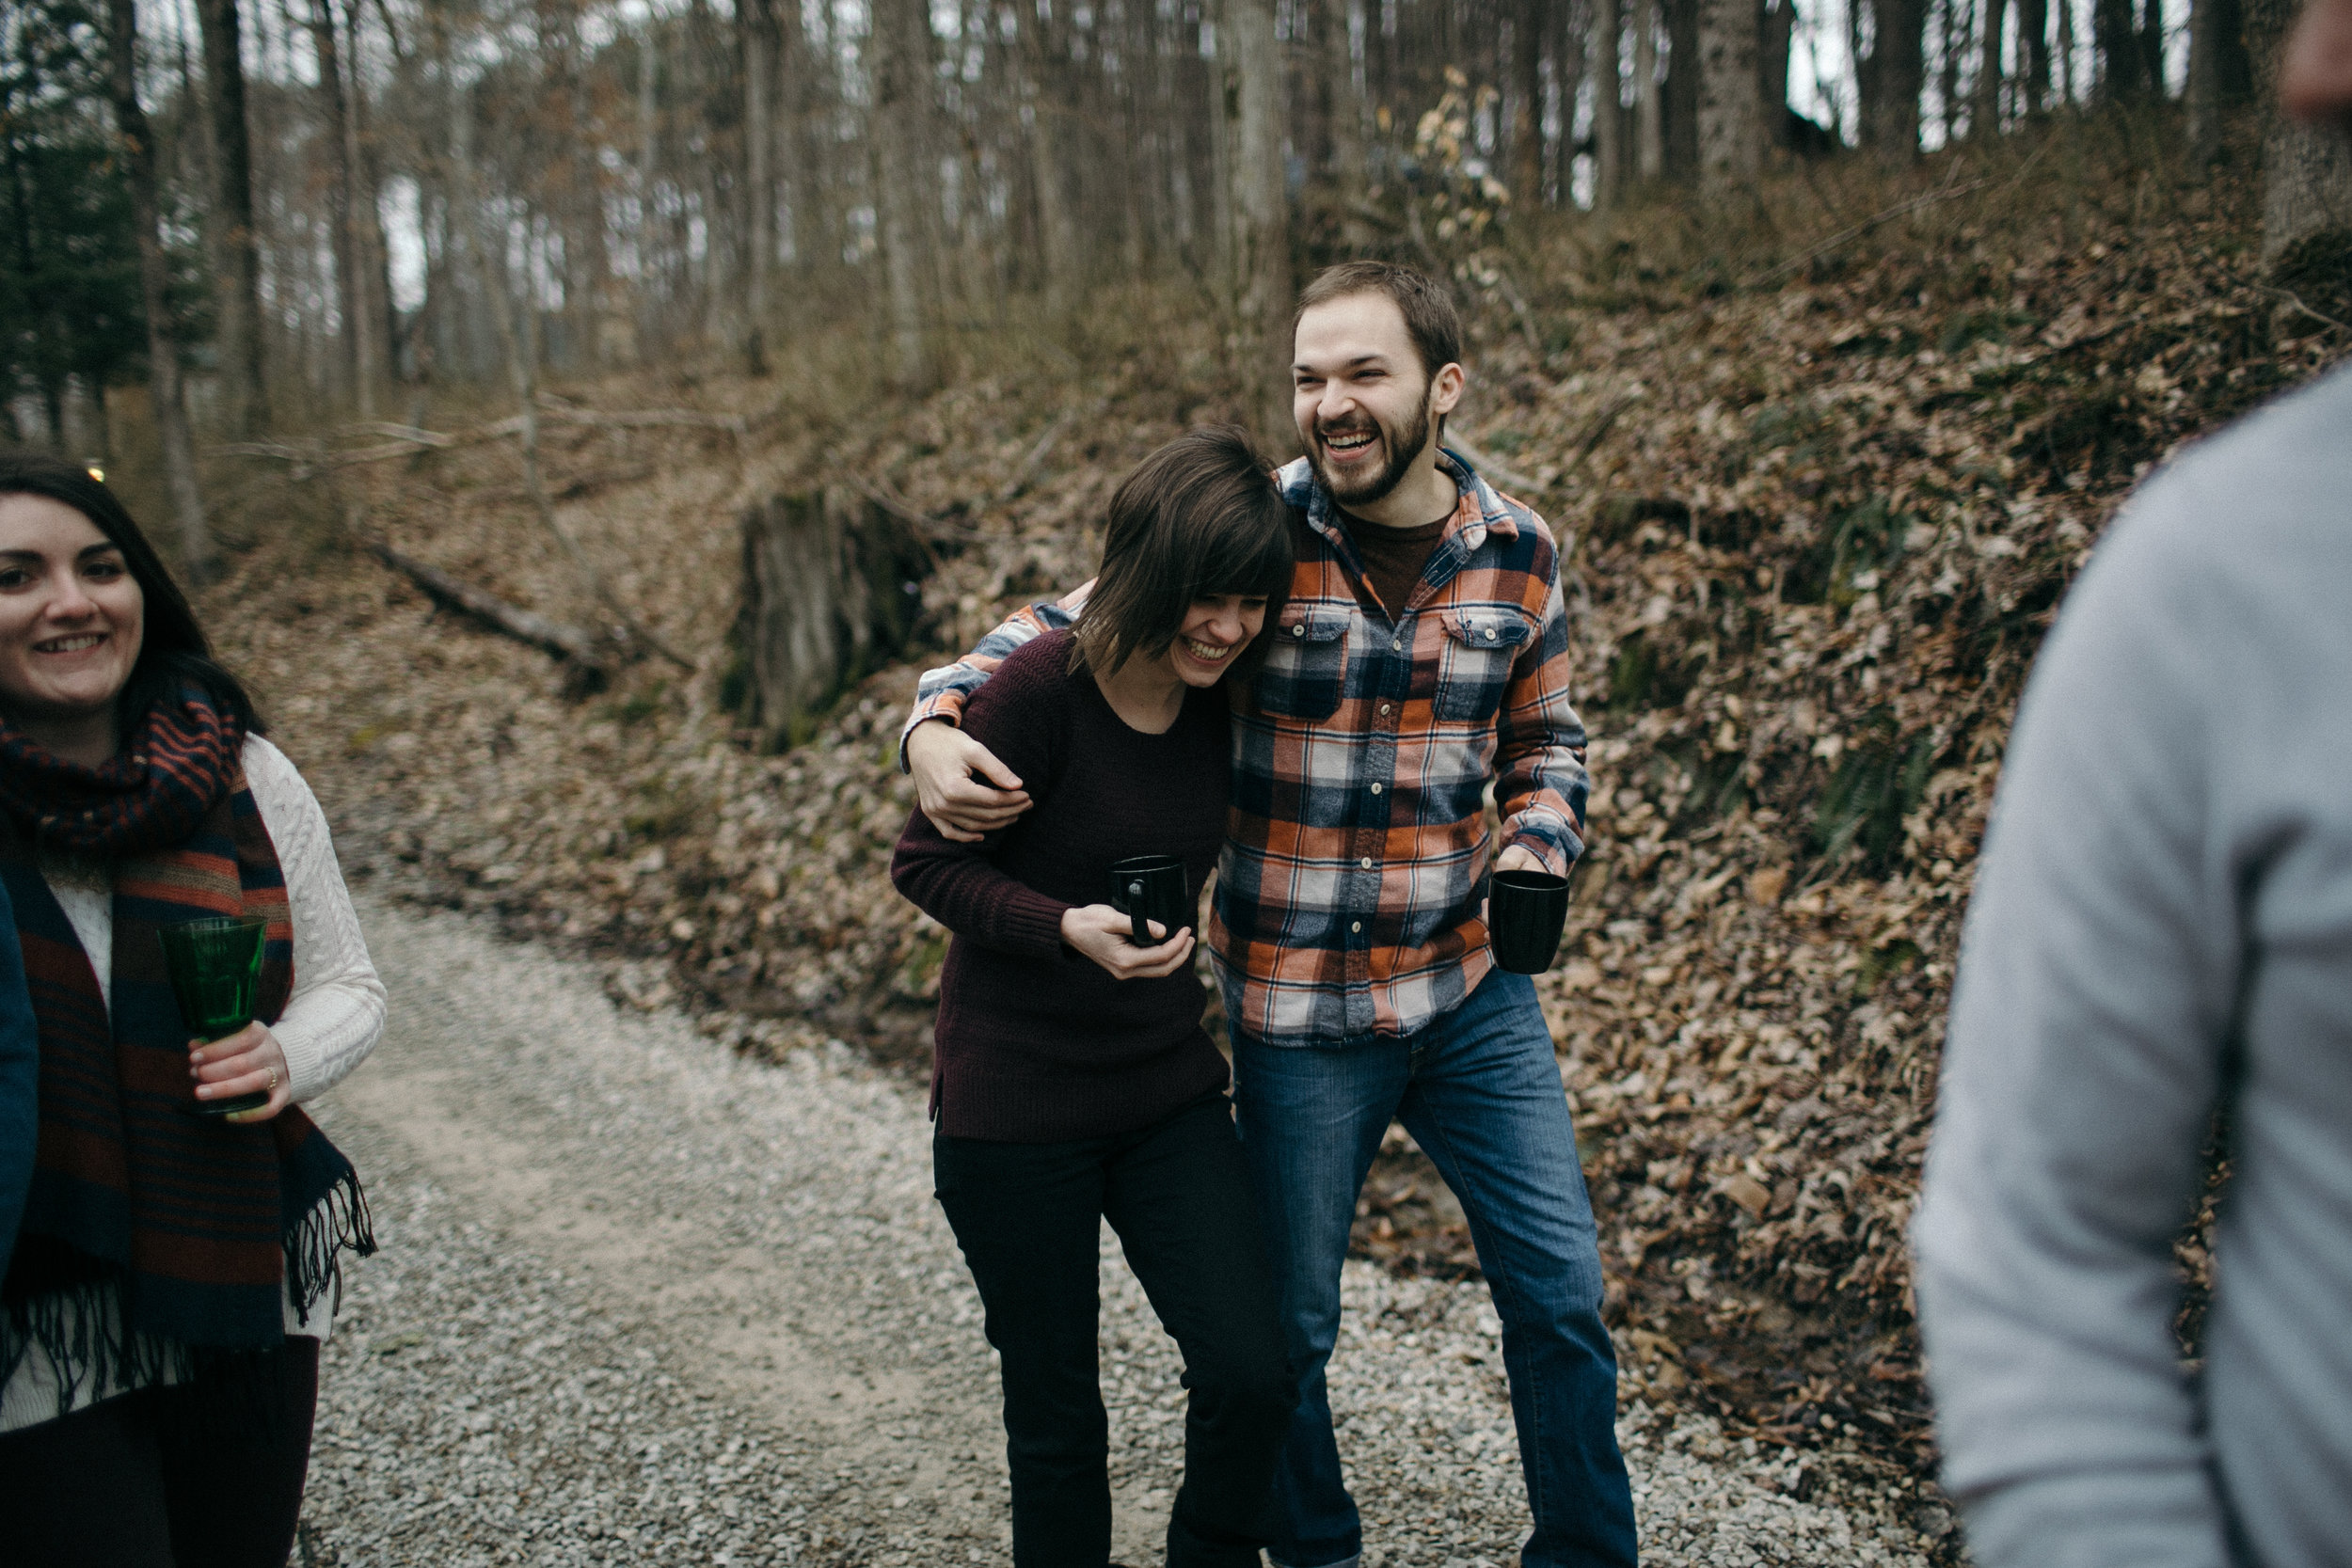 jake and krysti hocking hills engagement photography by sarah rose